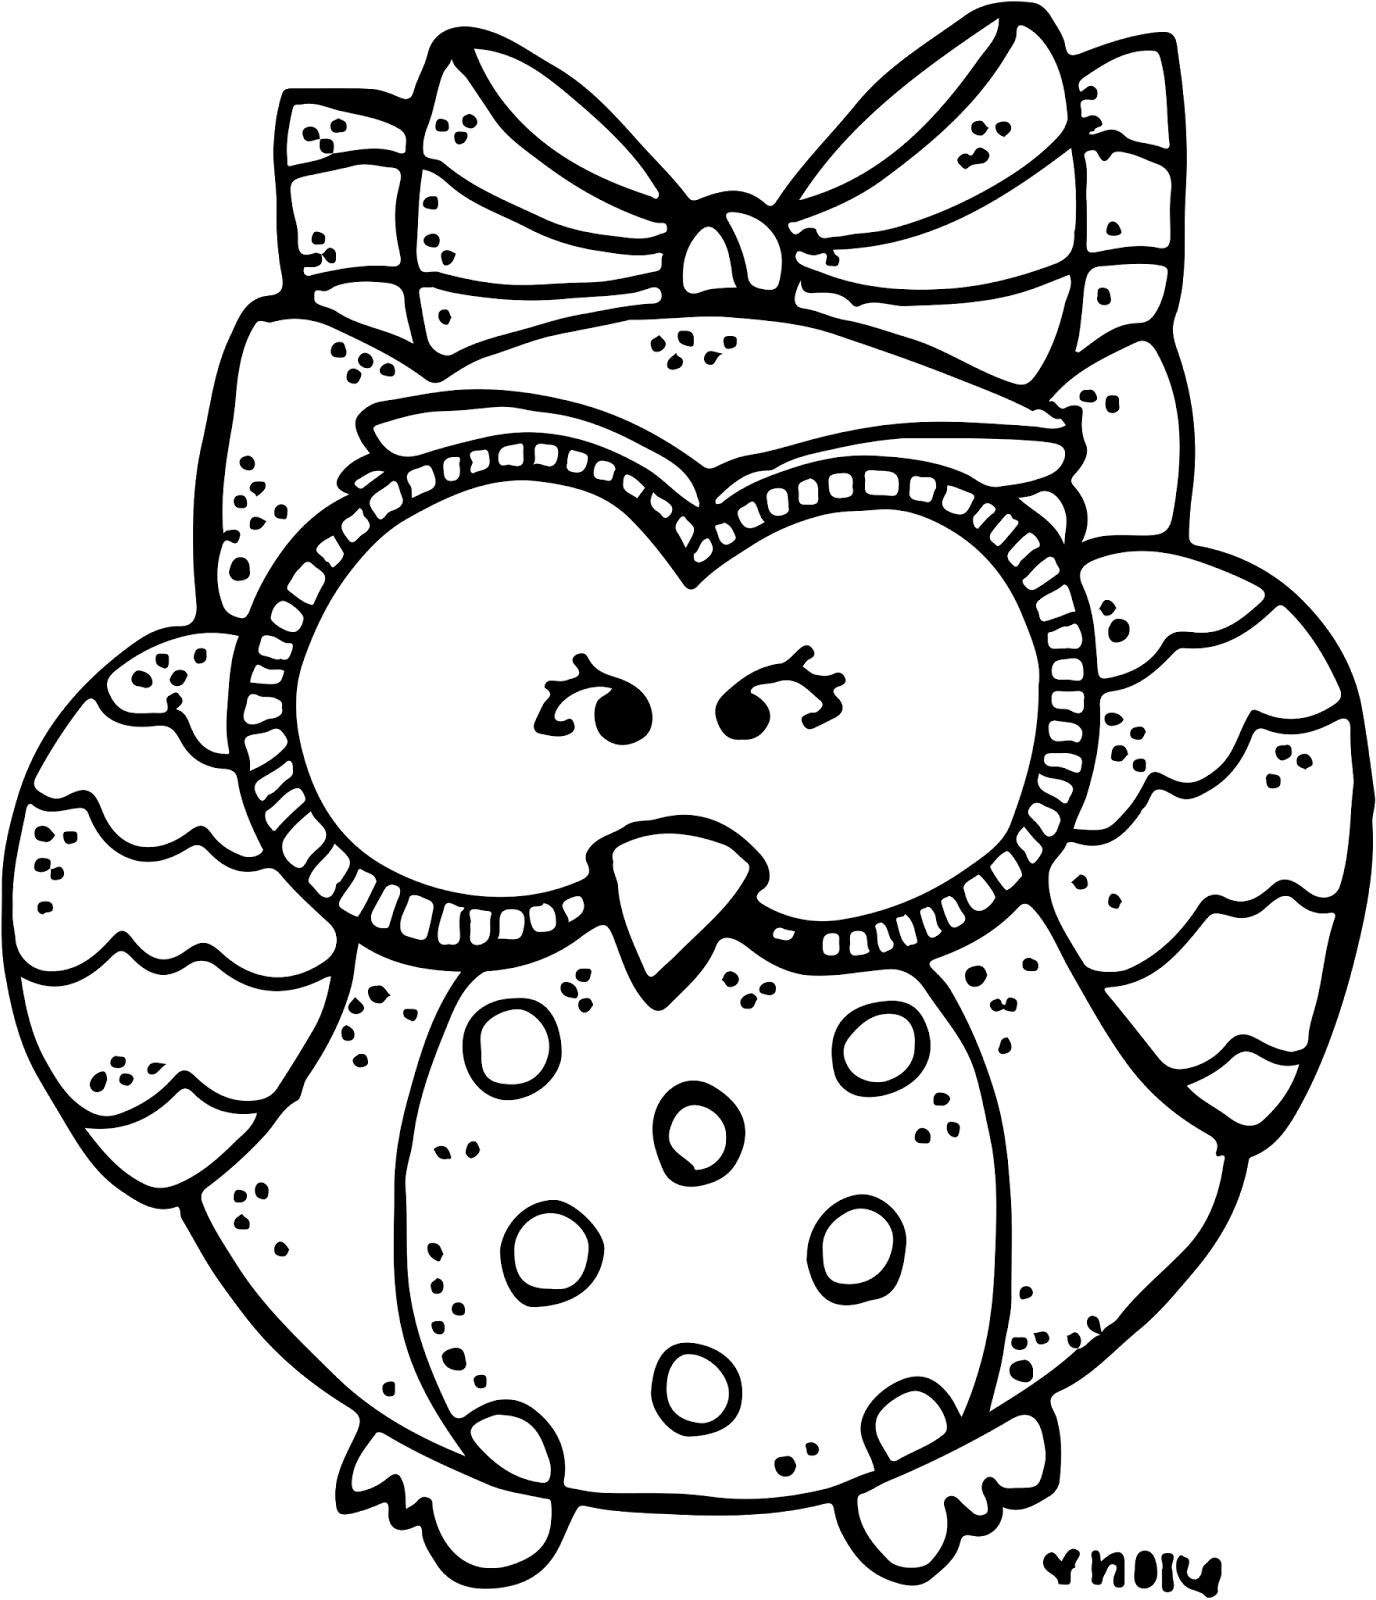 freeuse library Melonheadz january i have. Owl black and white clipart